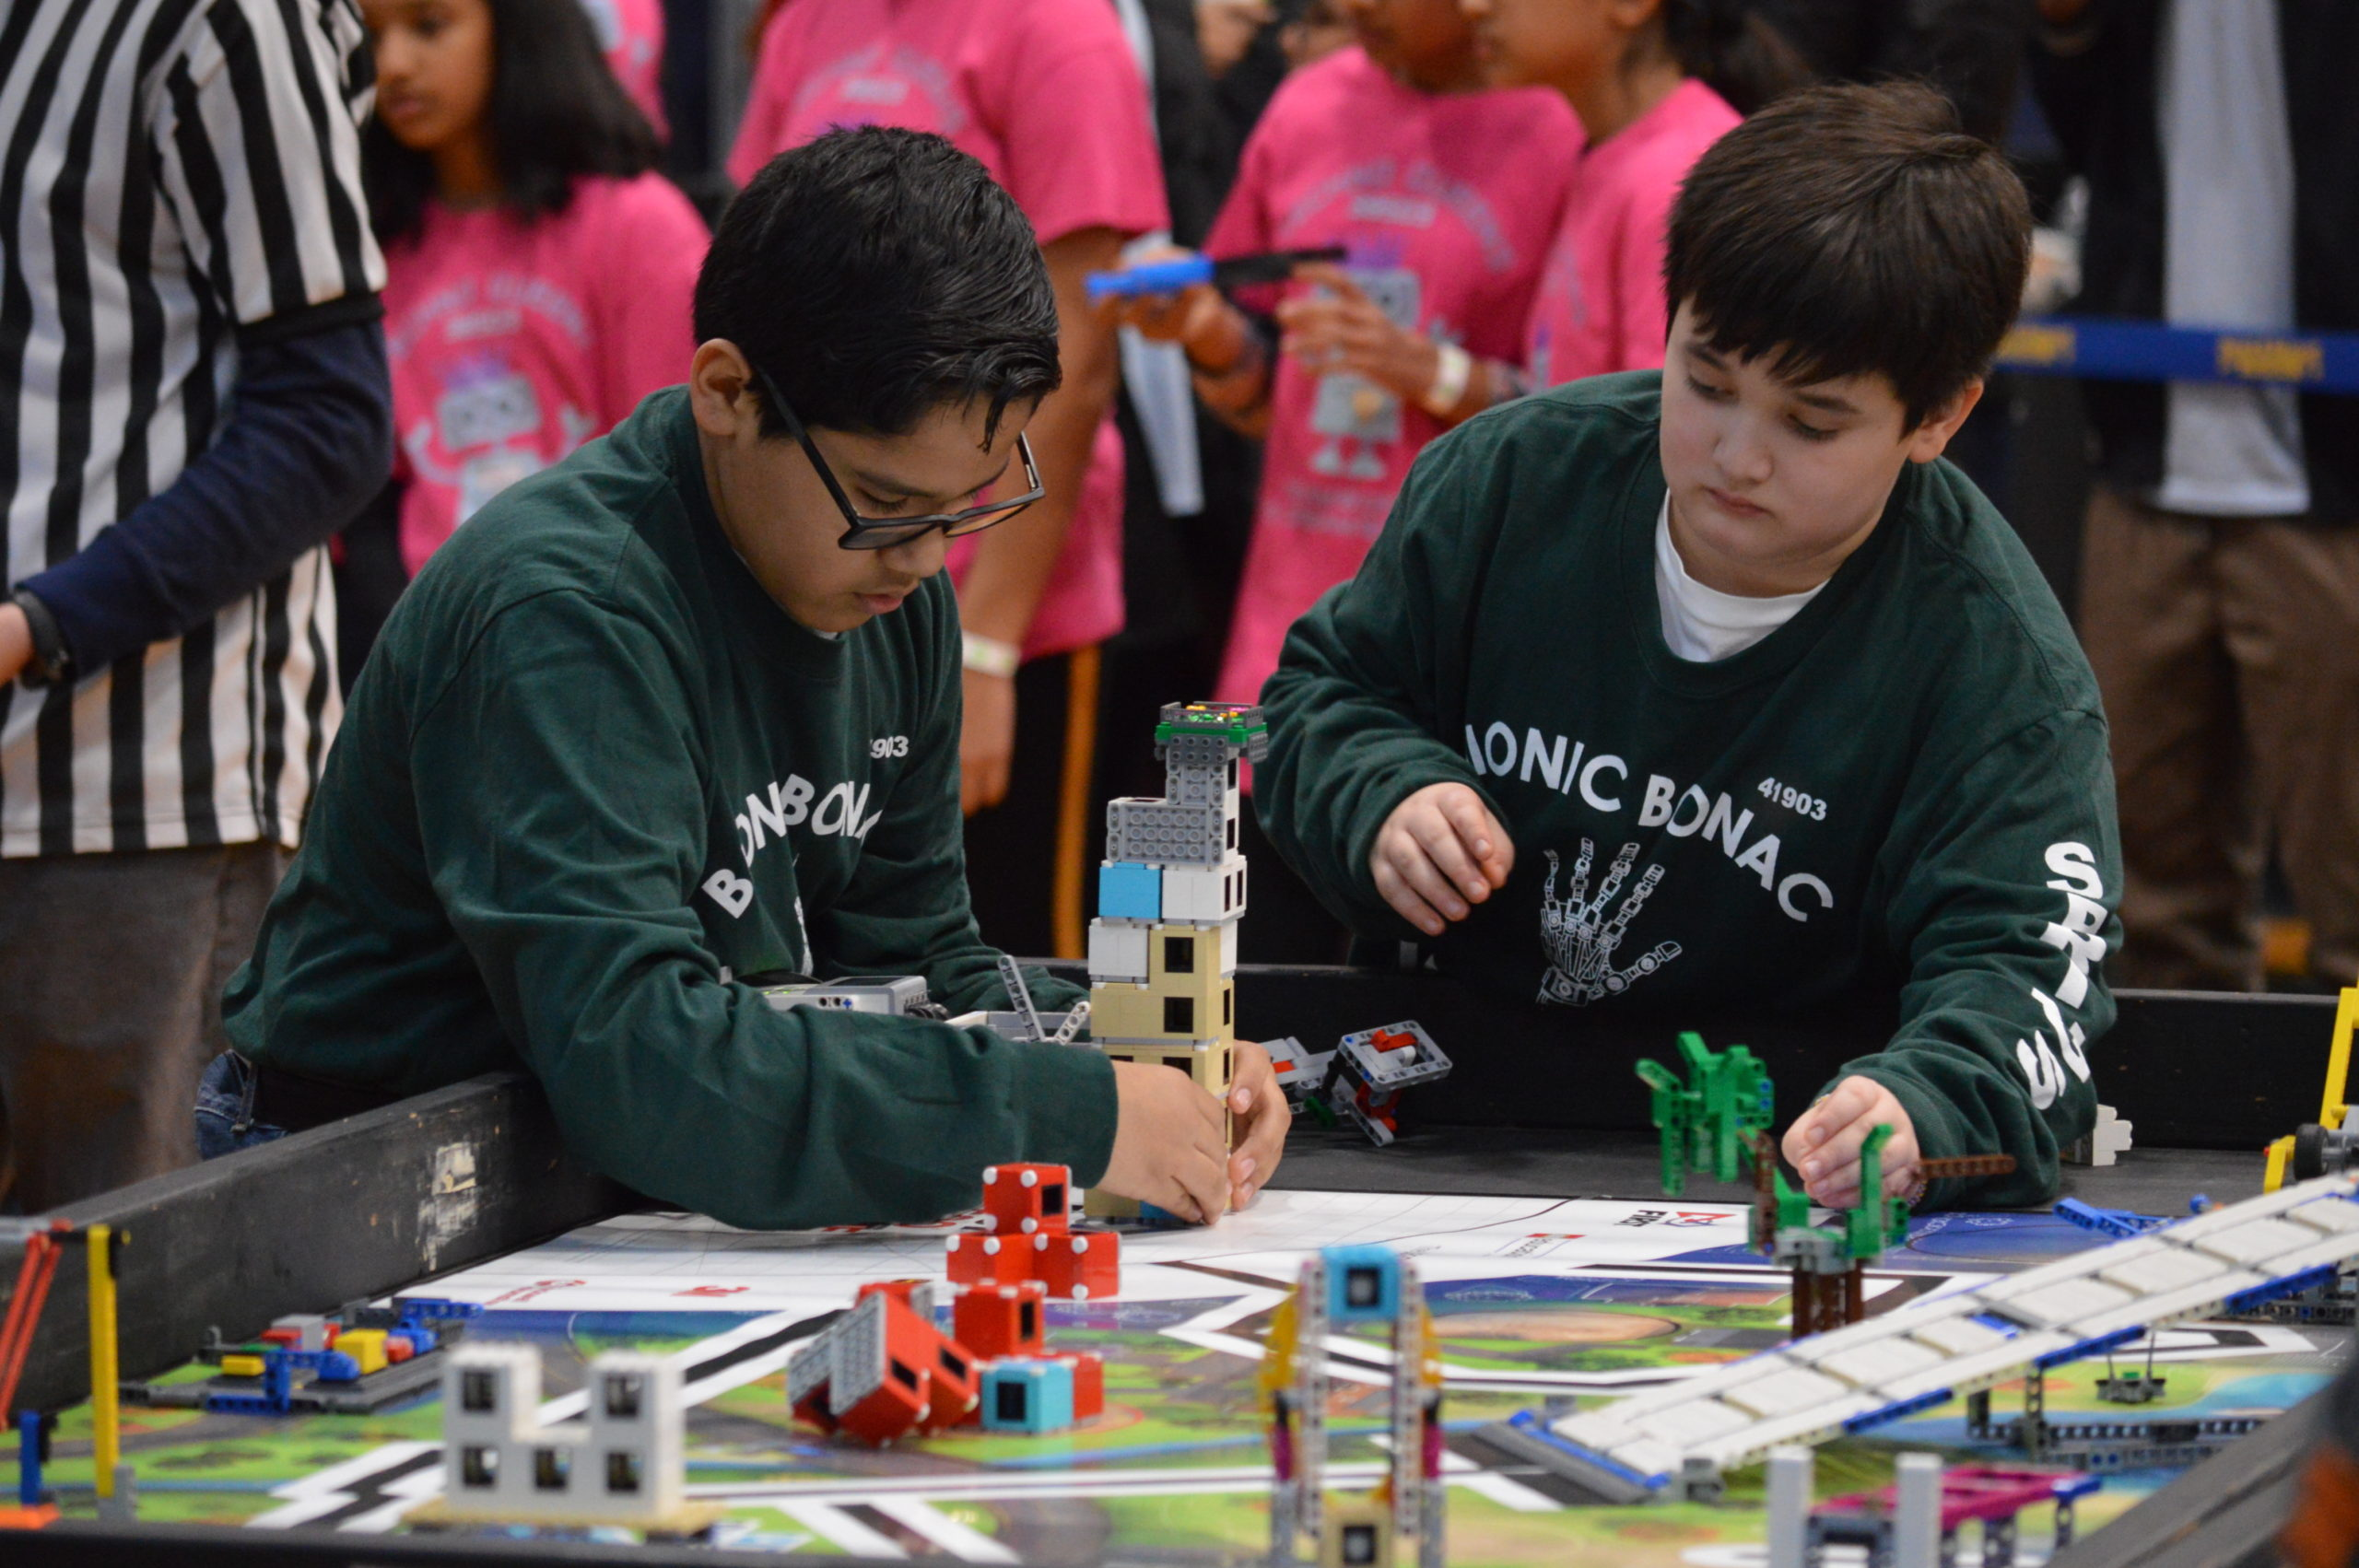 """Three teams from Springs School — the Springin' Ospreys, the Springs School Robonackers and the Bionic Bonac Builders — competed Saturday at Huntington High School in one of seven qualifier rounds of the Long Island FIRST LEGO League Tournament season. While none of the teams, comprising students in fifth, sixth and seventh grades, advanced to the Long Island final, the teams all placed in the top 10 of the robotics competition. Marcos Munoz, left, and Thomas """"T.K."""" Sookshawee-Barnard at the table for the Bionic Bonac Builders. GAVIN MENU PHOTOS"""